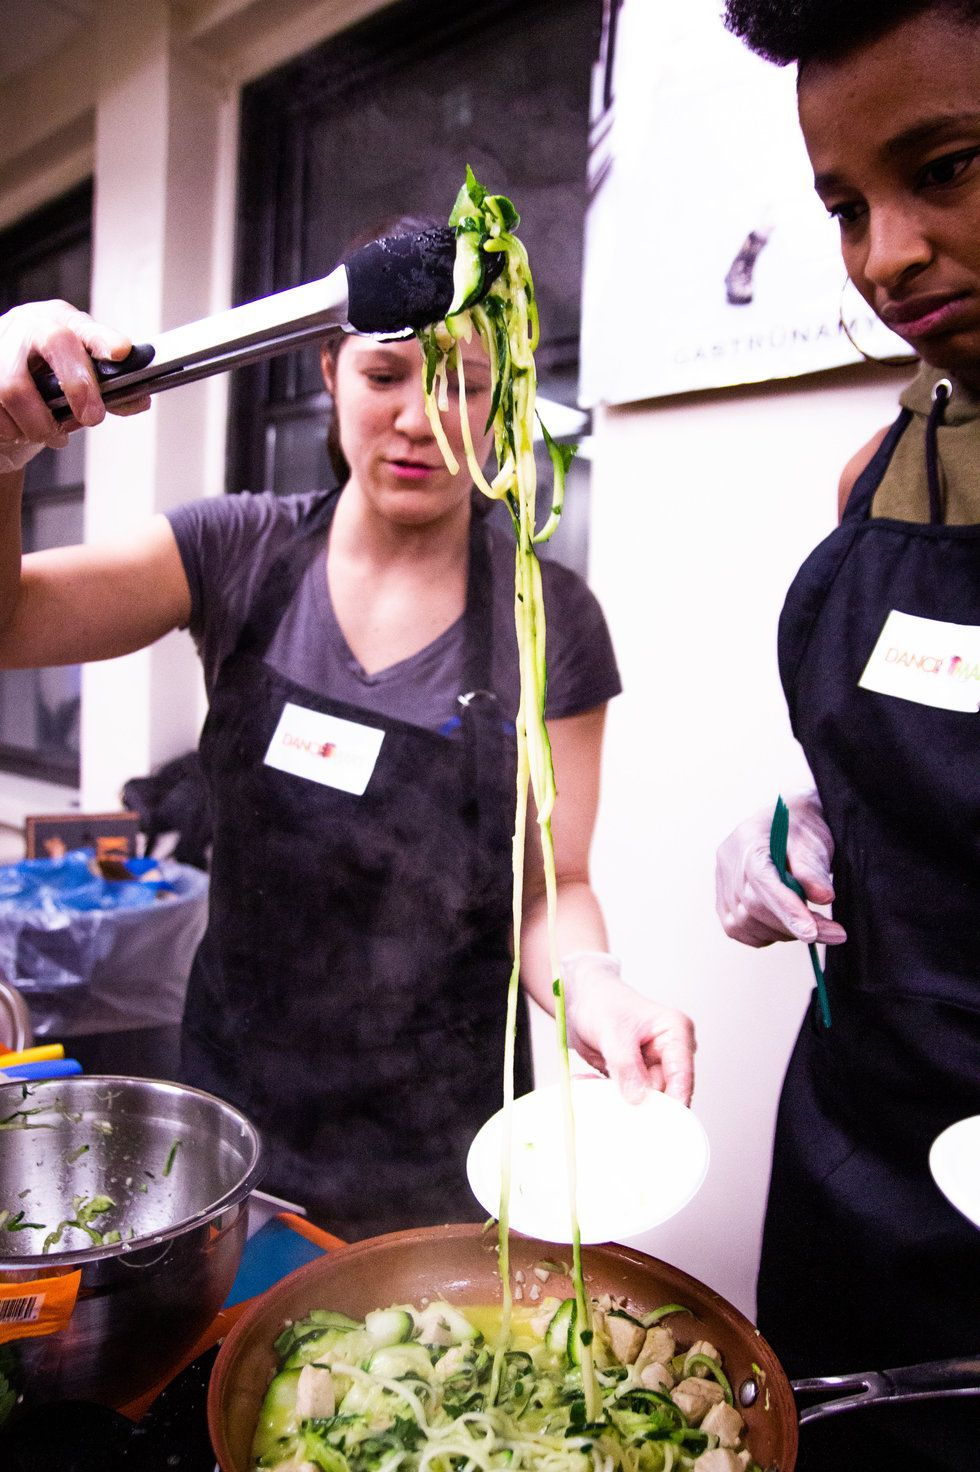 Two women stand over a pan of zucchini noodles and chicken, one uses a utencil to put some on a plate.